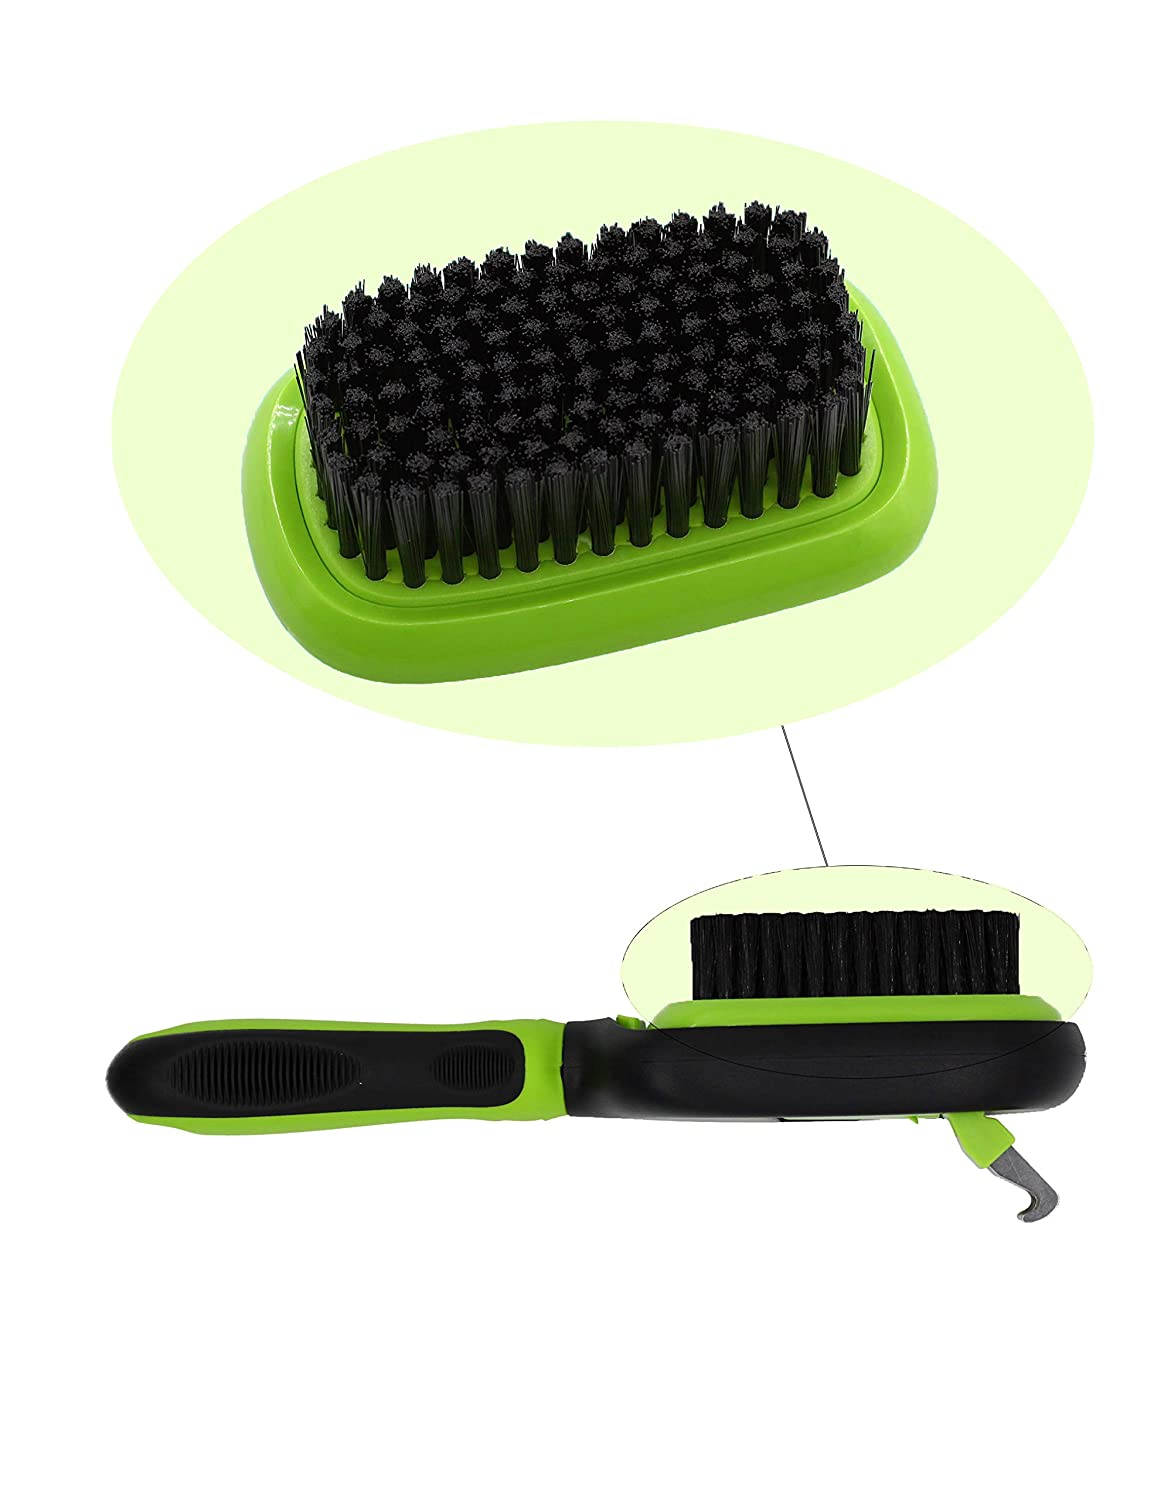 Cleaning Stubborn Mats and Tangled N A Dog Brush /& Cat Brush Pet Grooming Comb 5 in 1 for Fur Remove